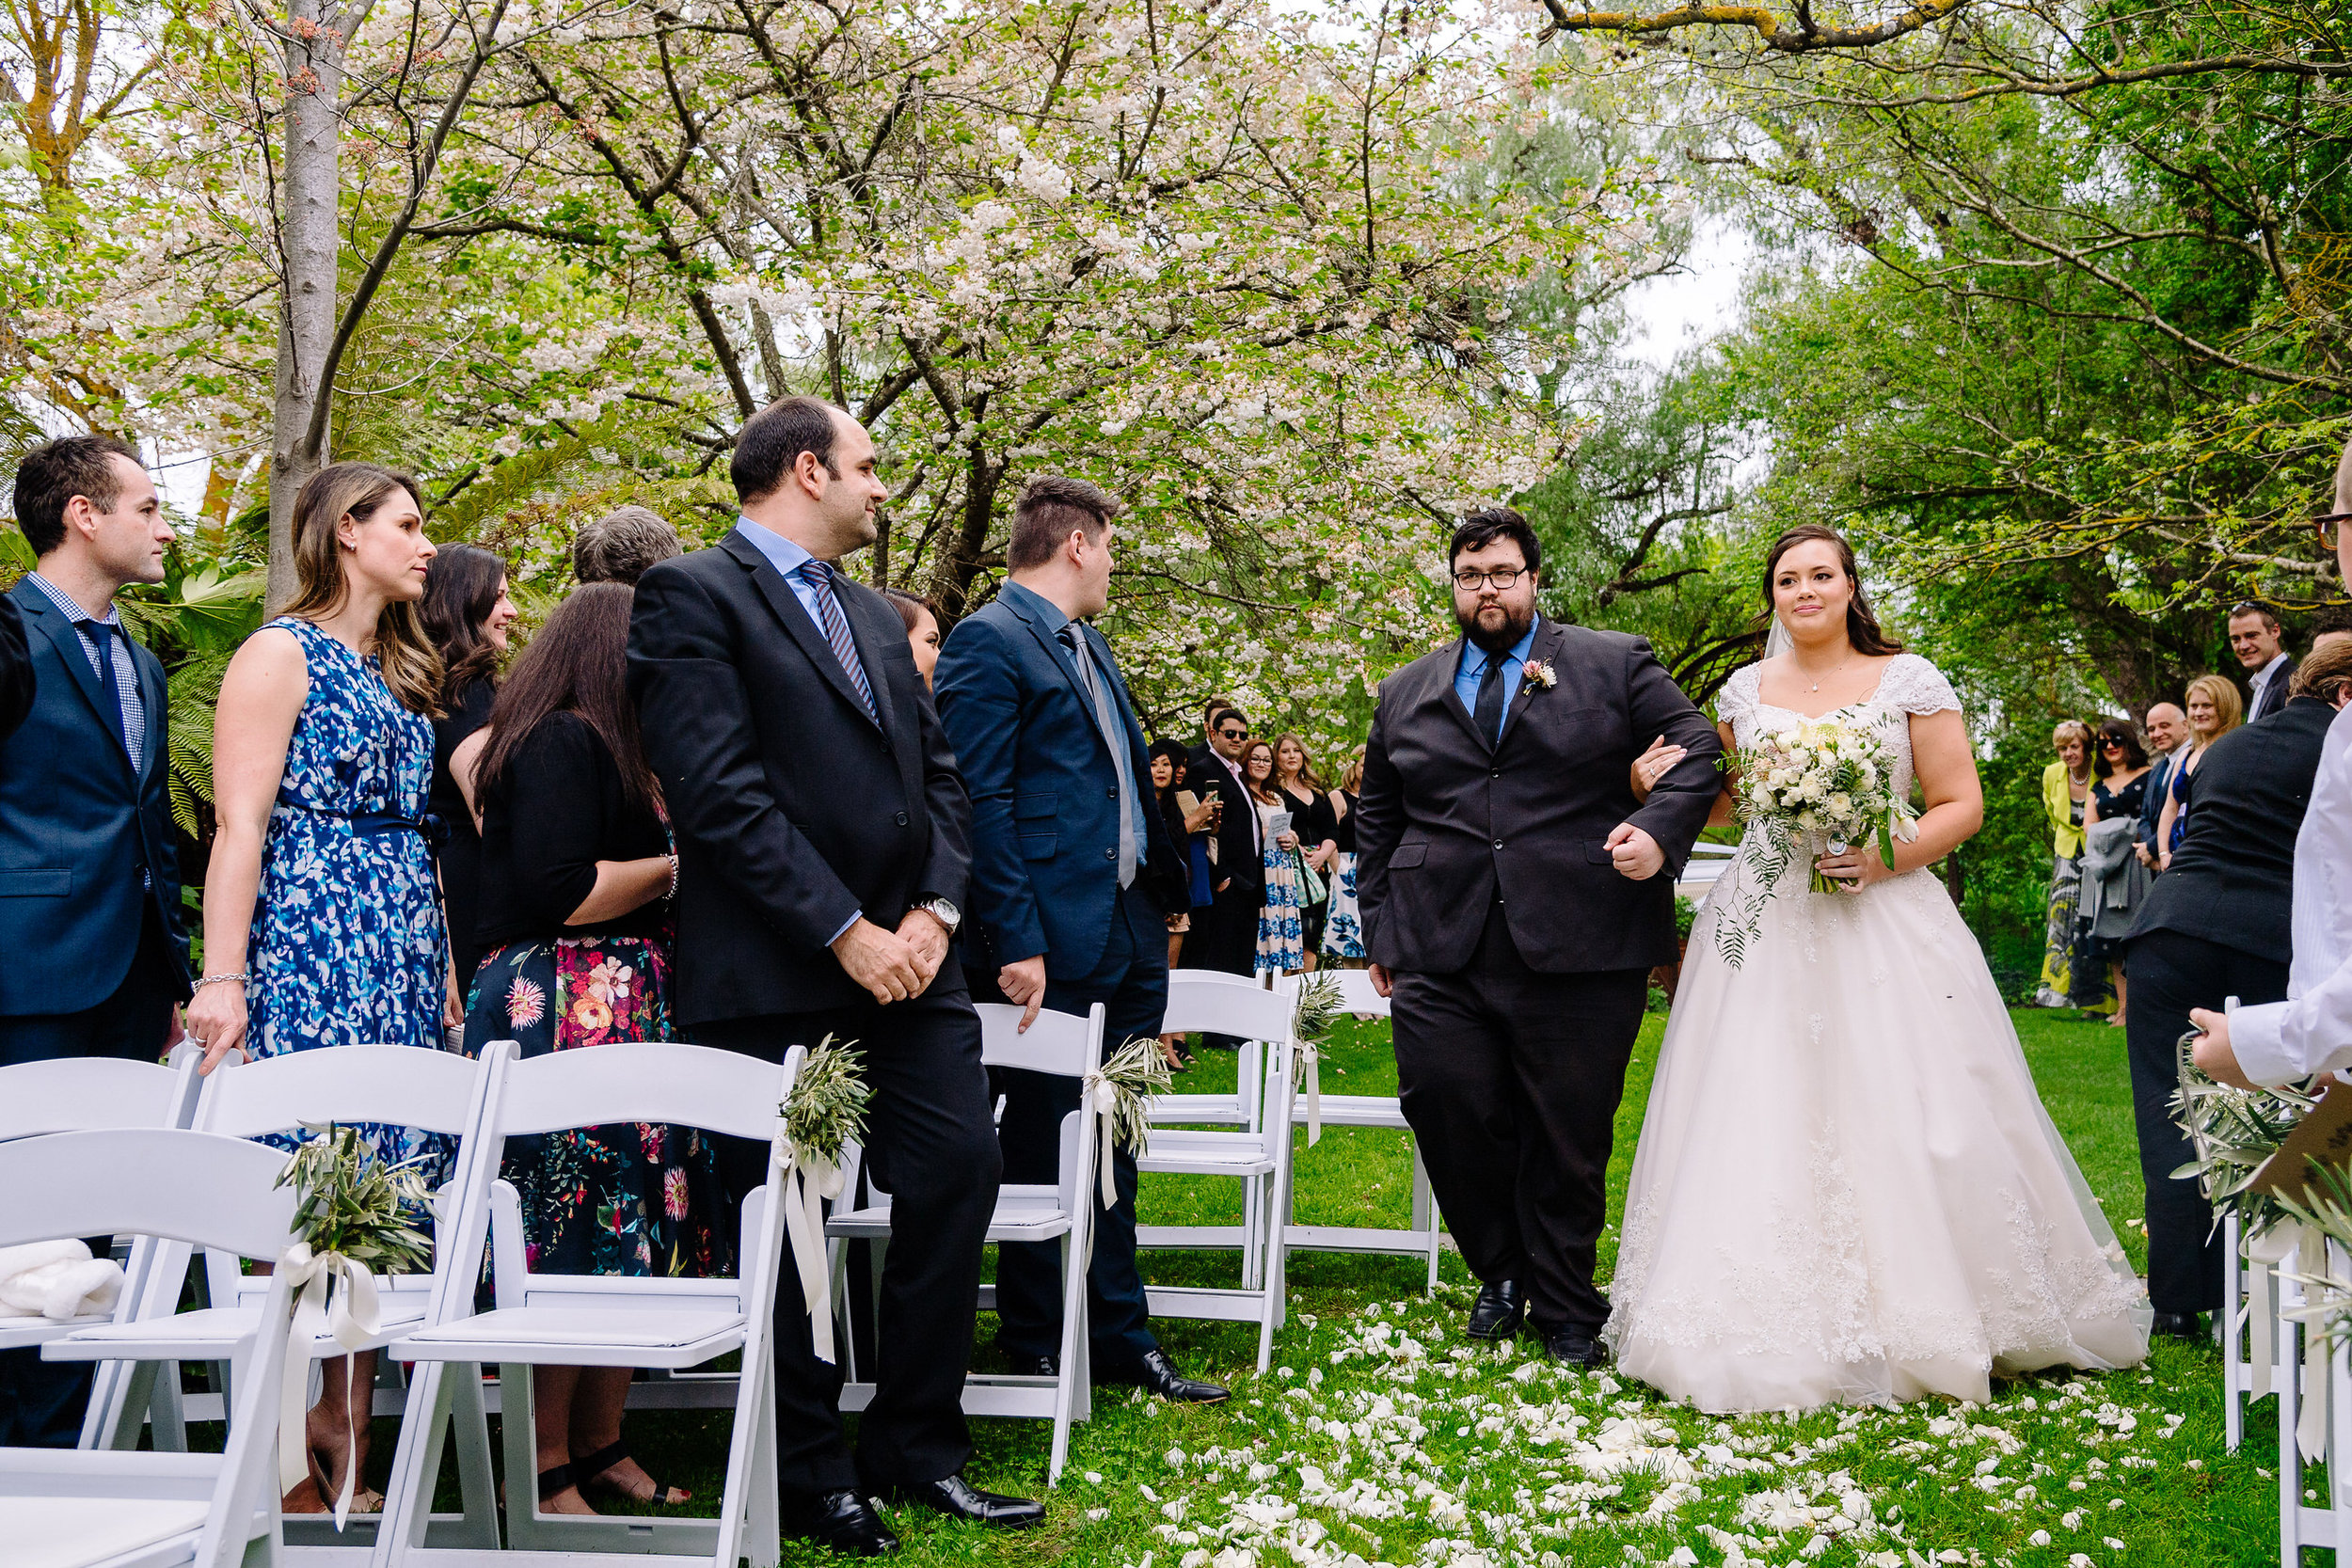 Chateau_Dore_Wedding_Photography_Justin_and_Jim-108.JPG